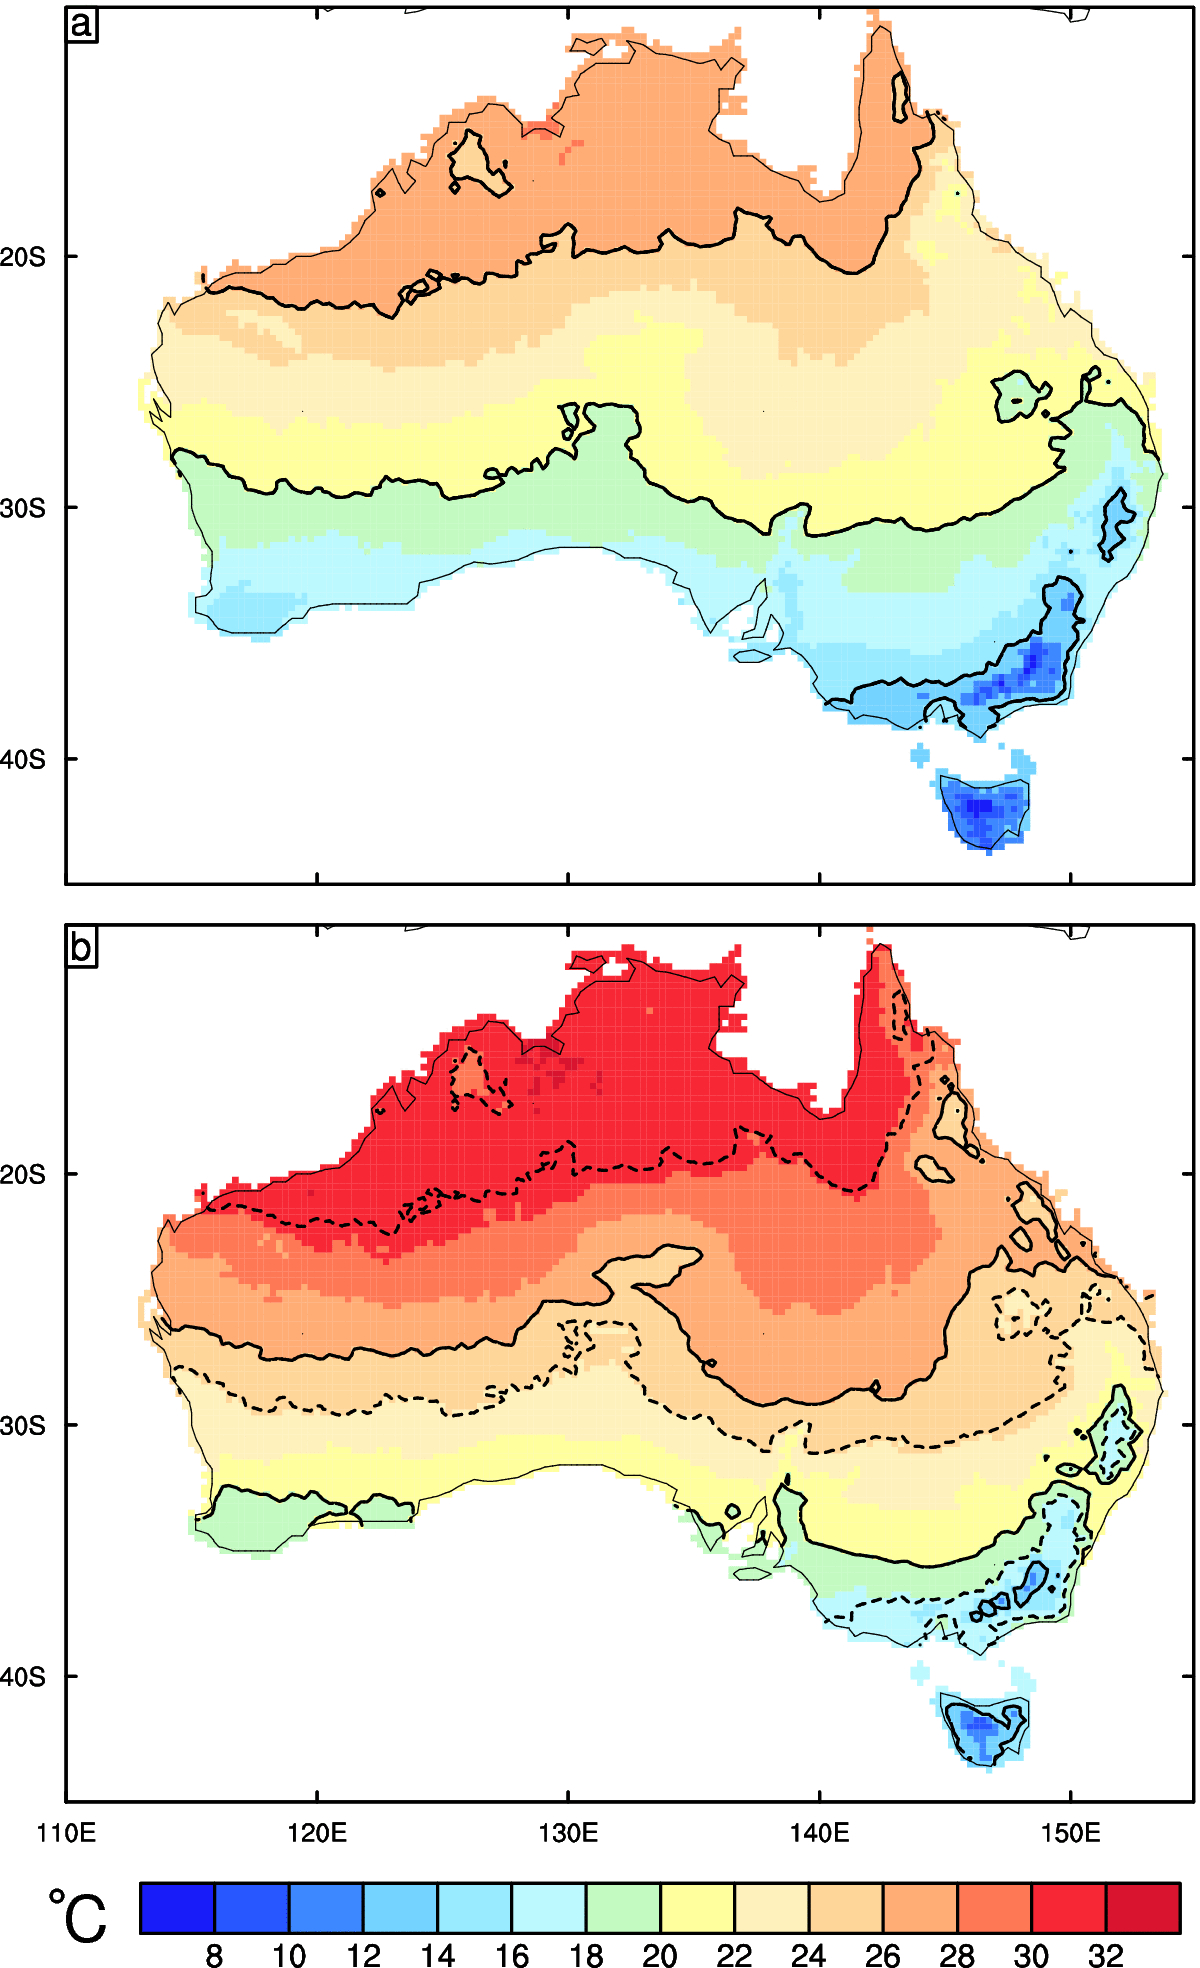 Climate projections show Australia is heading for a much warmer future